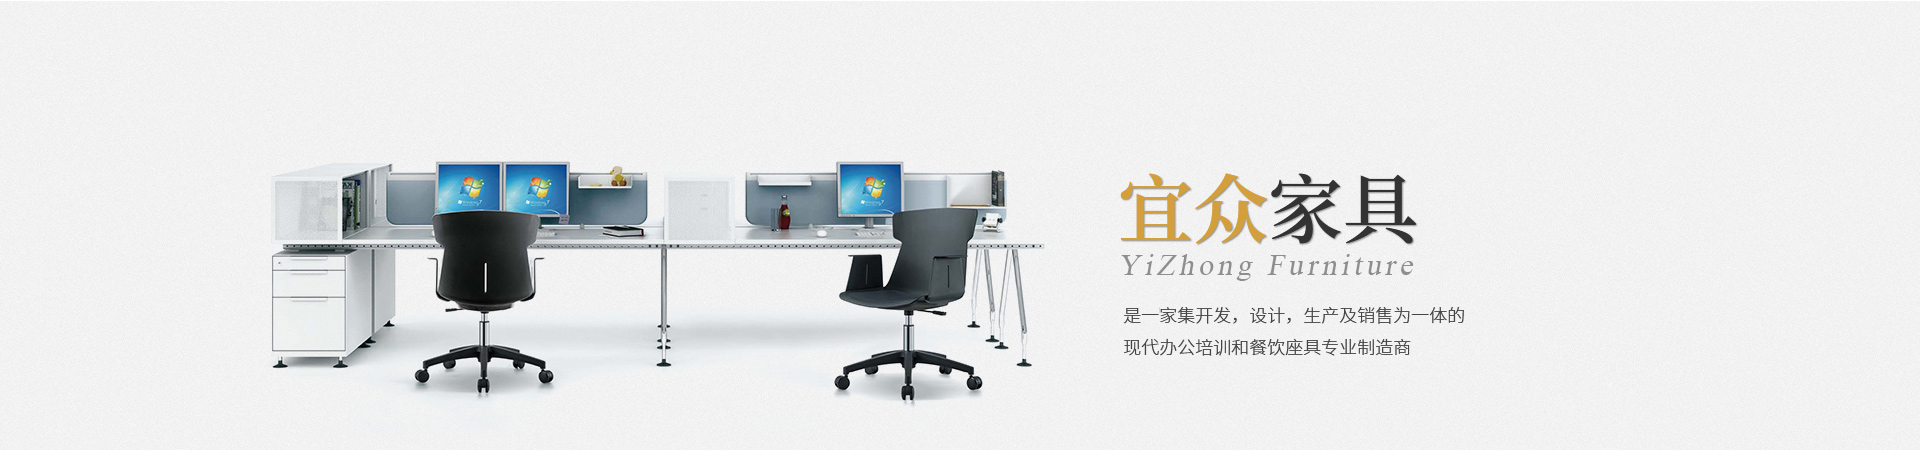 http://cn.yizhongfurniture.com/data/upload/202006/20200609144138_194.jpg